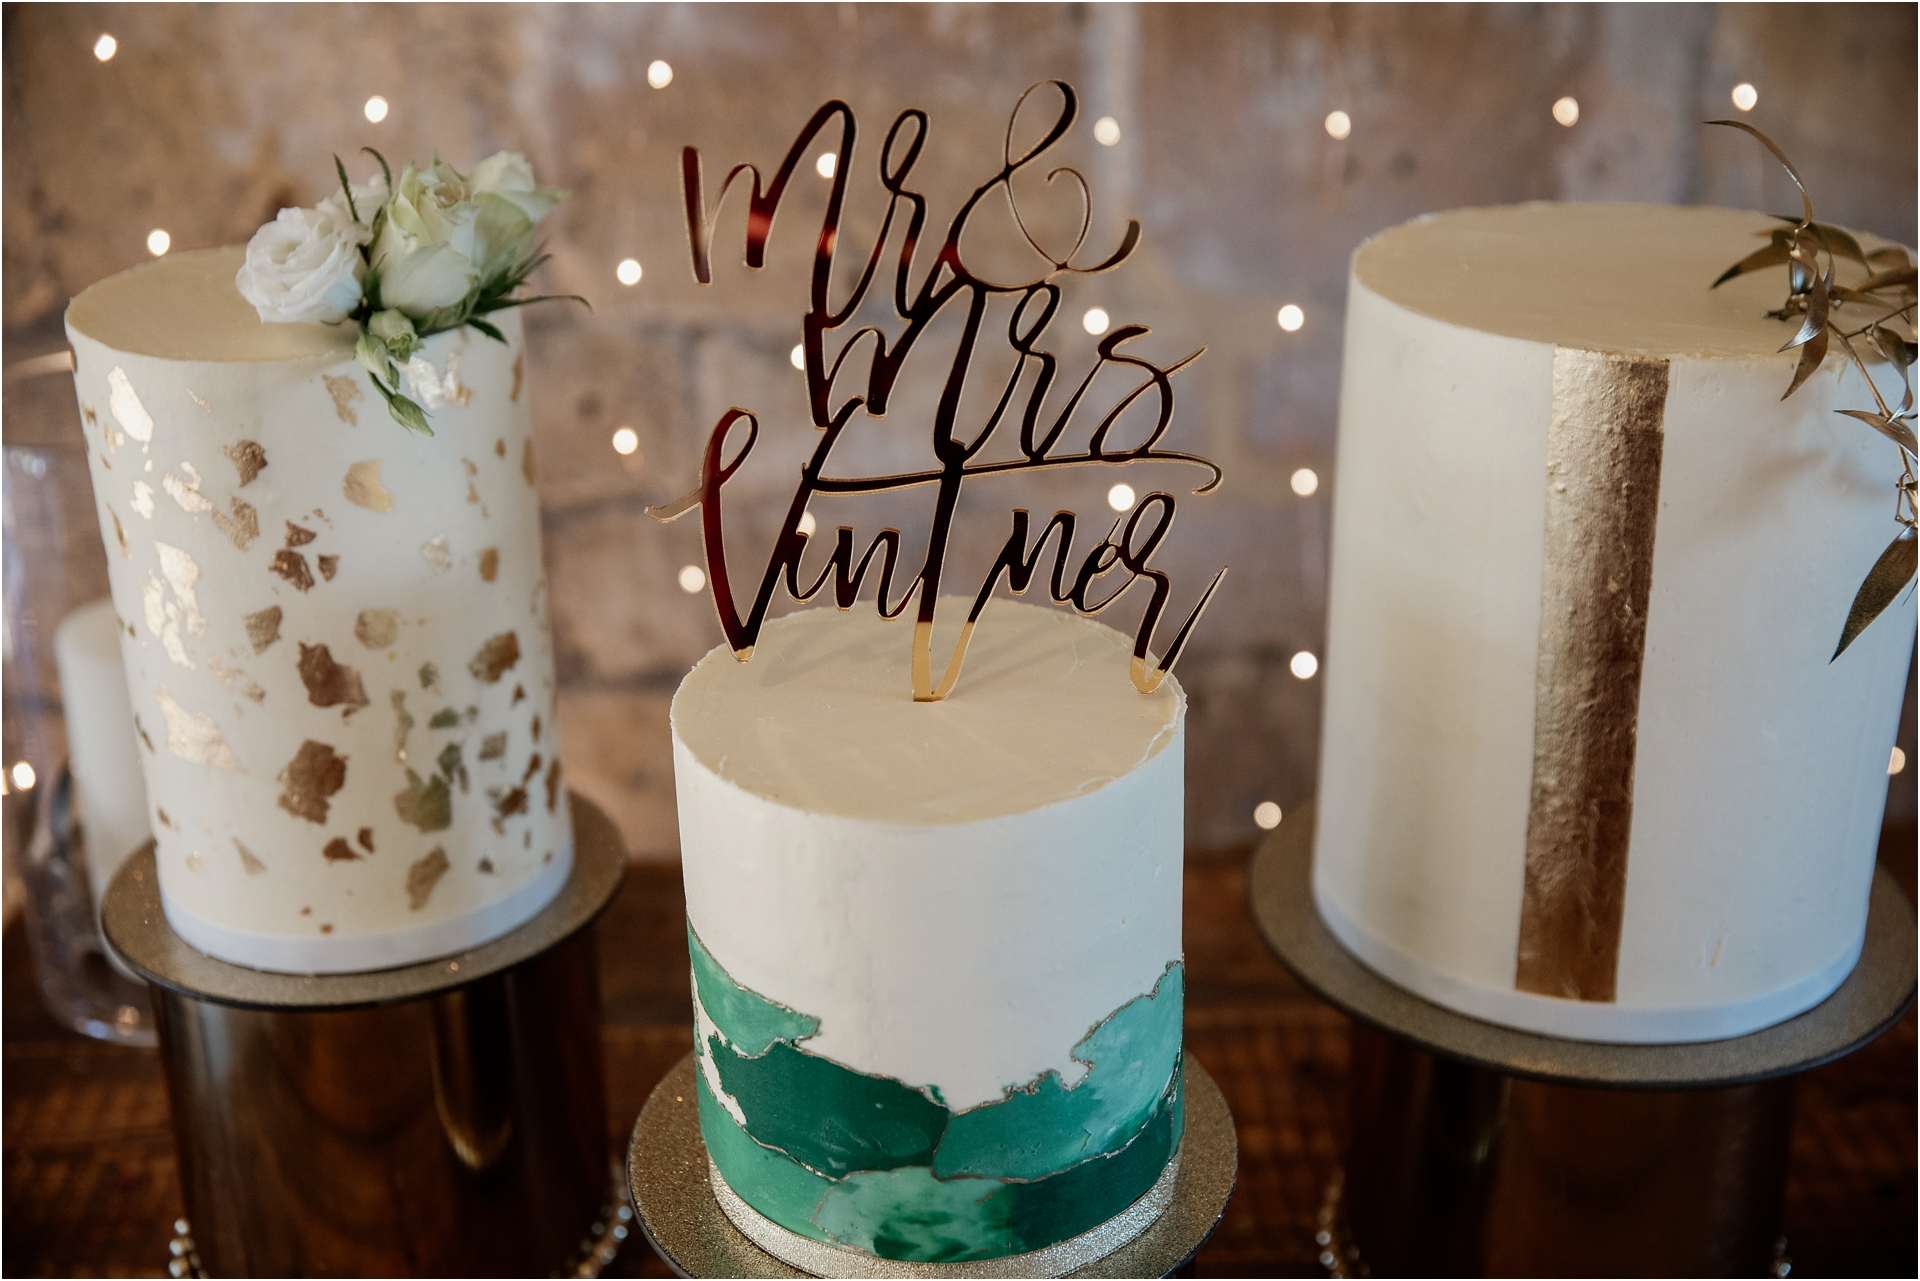 Lapstone Barn winter wedding cakes